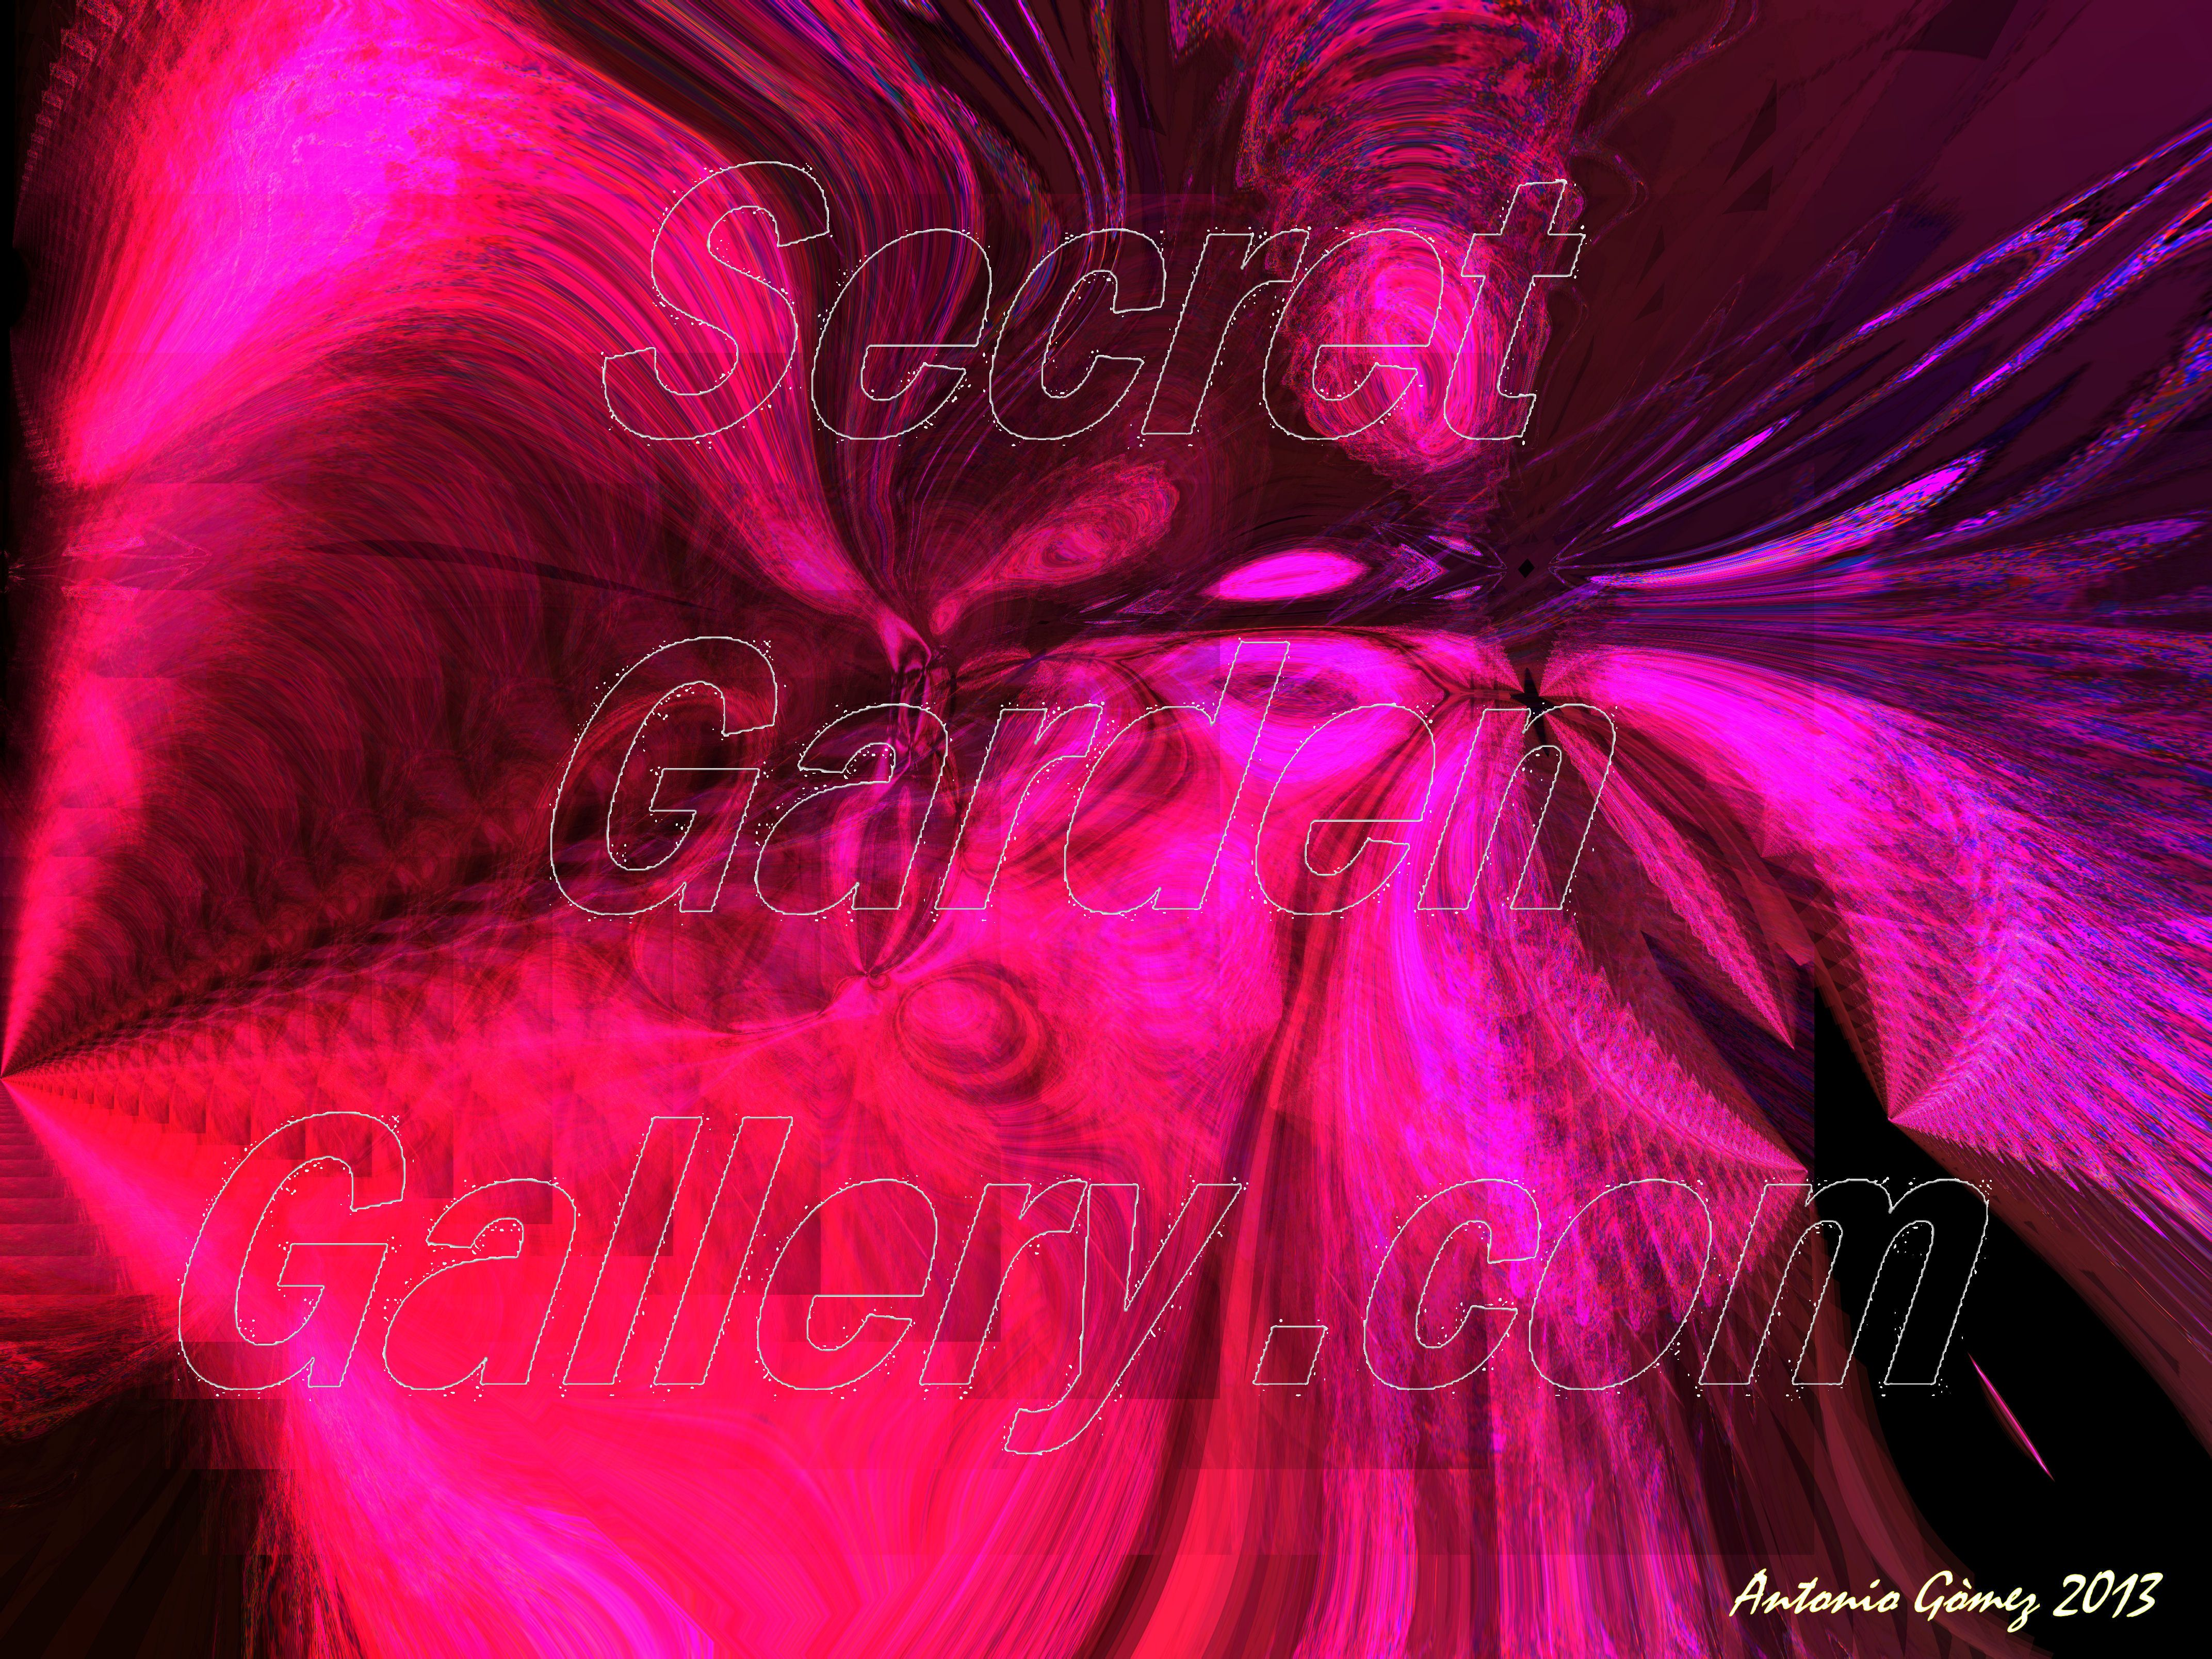 Digital Photo Manipulation Abstract Art print on canvas 19.5 x 14.5 inch sing & number by Artist